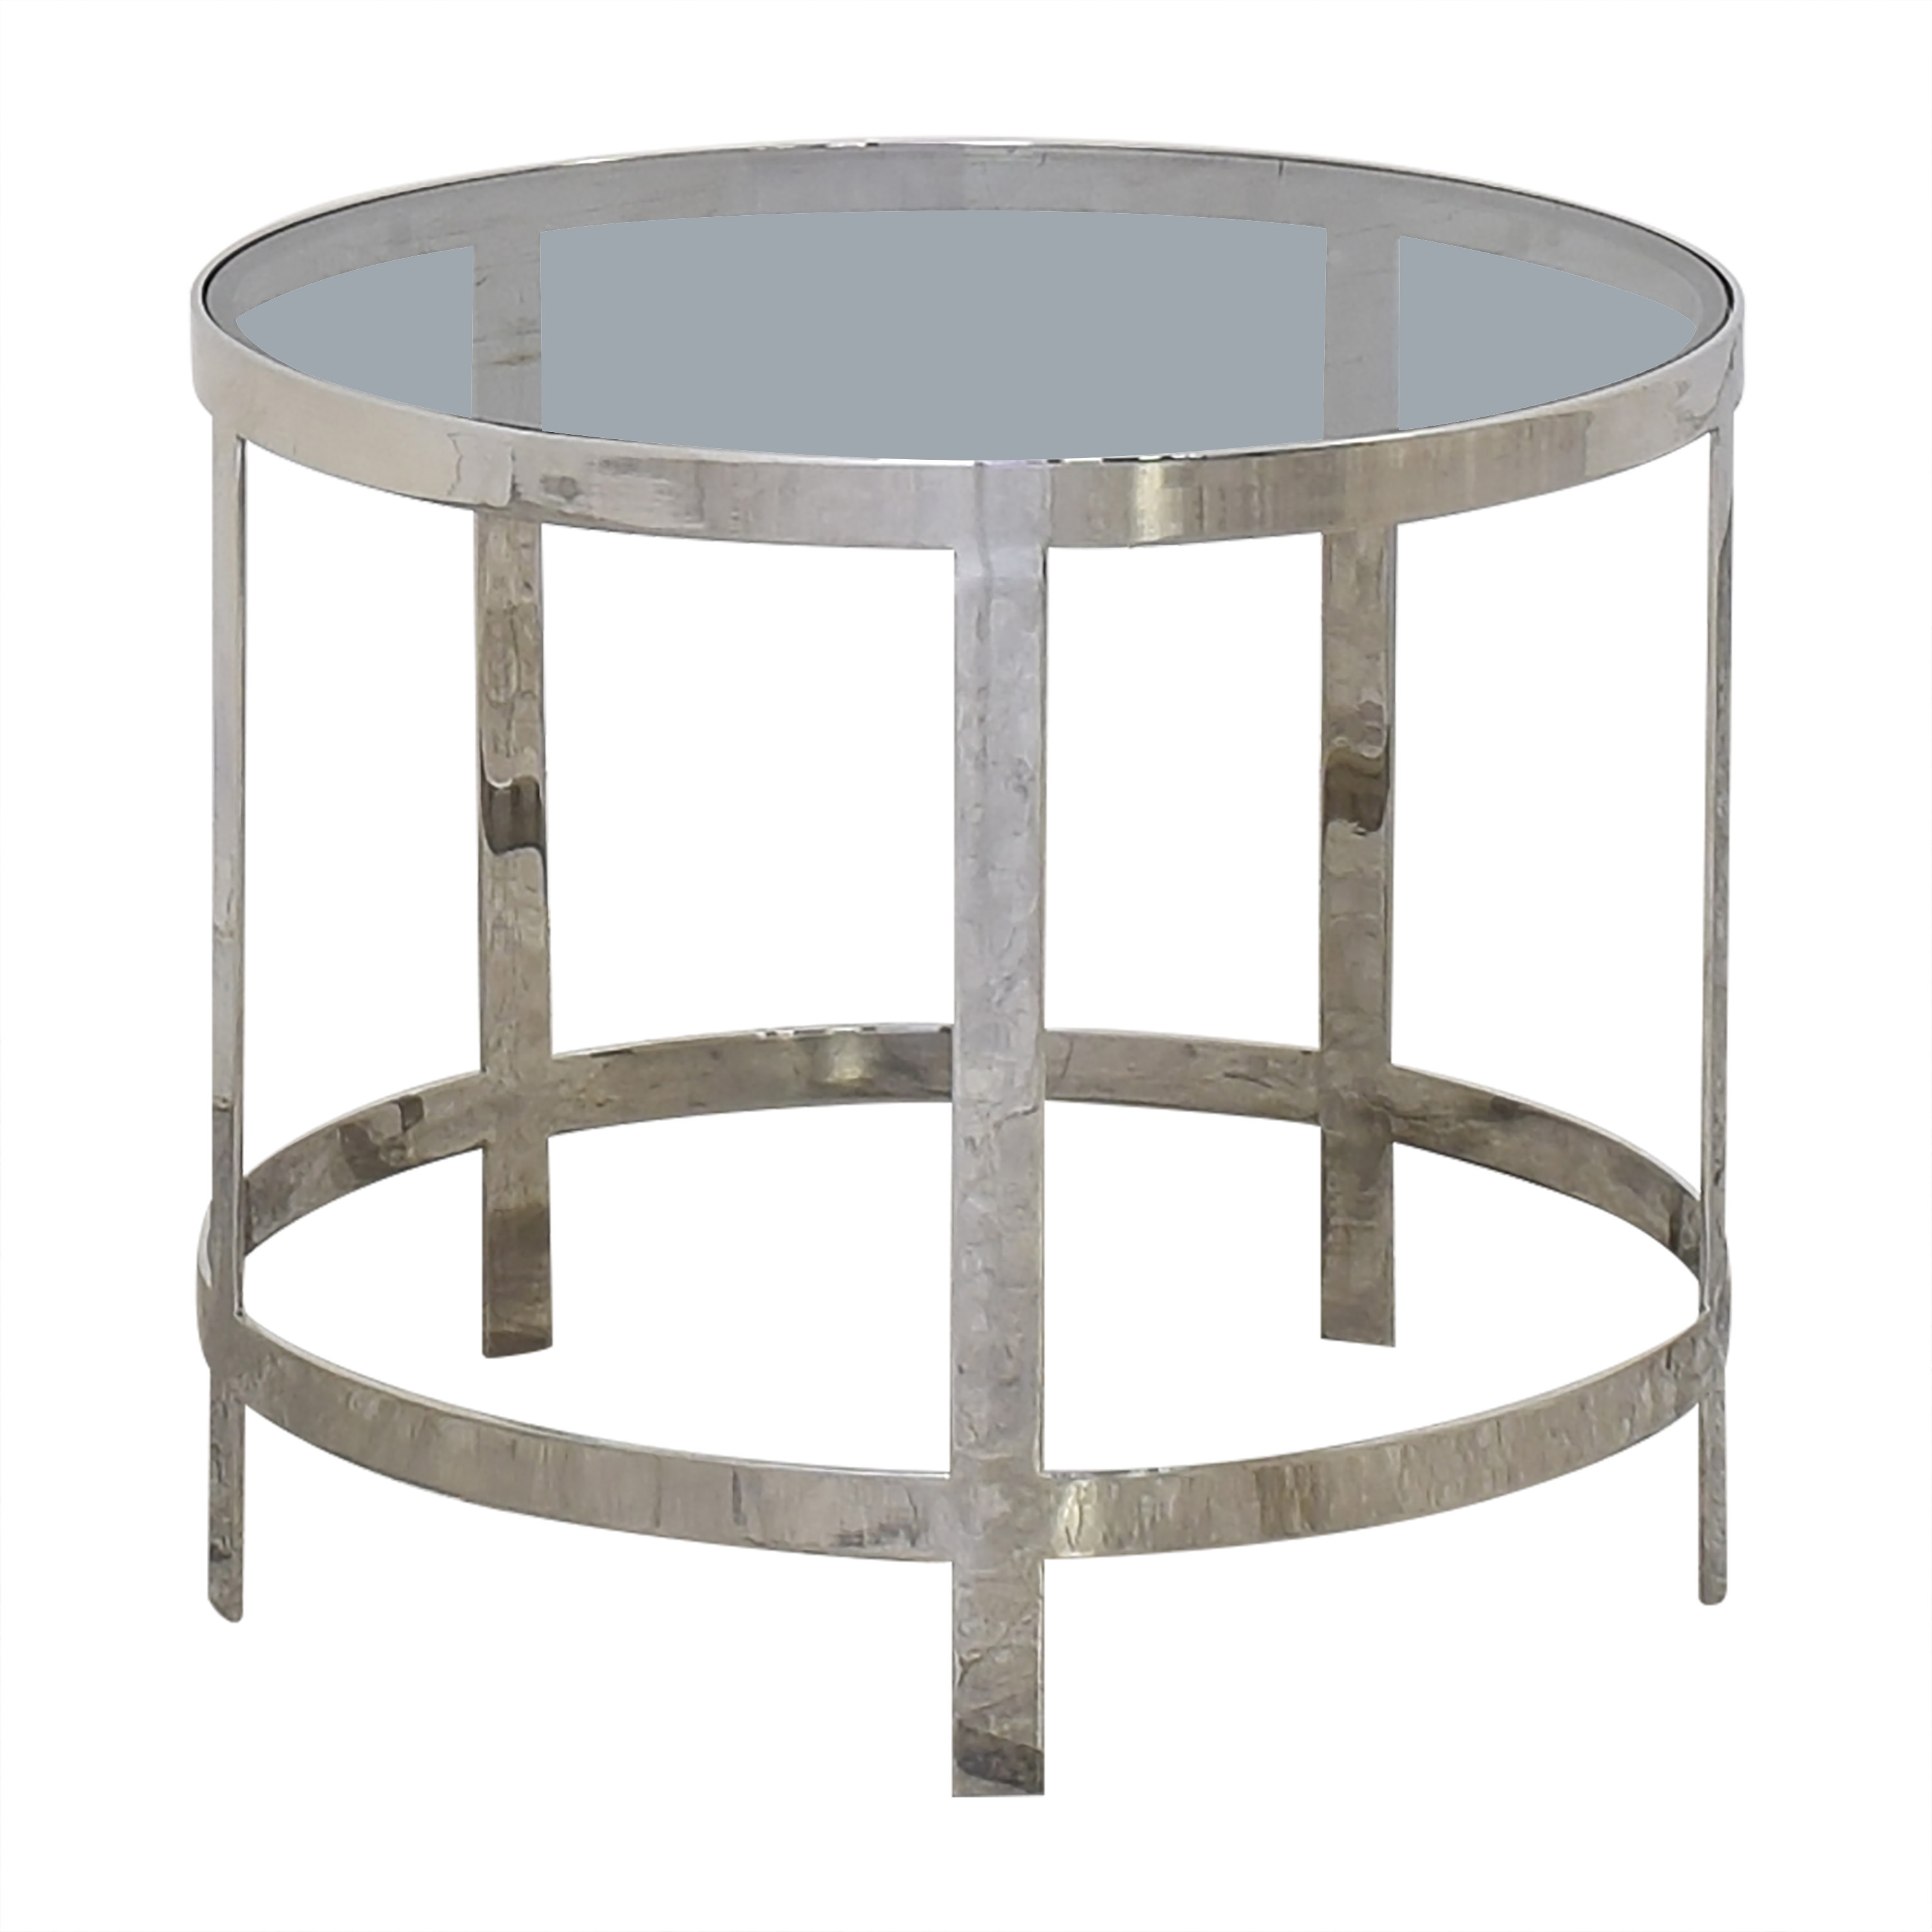 Mitchell Gold + Bob Williams Mitchell Gold + Bob Williams Side Table for sale